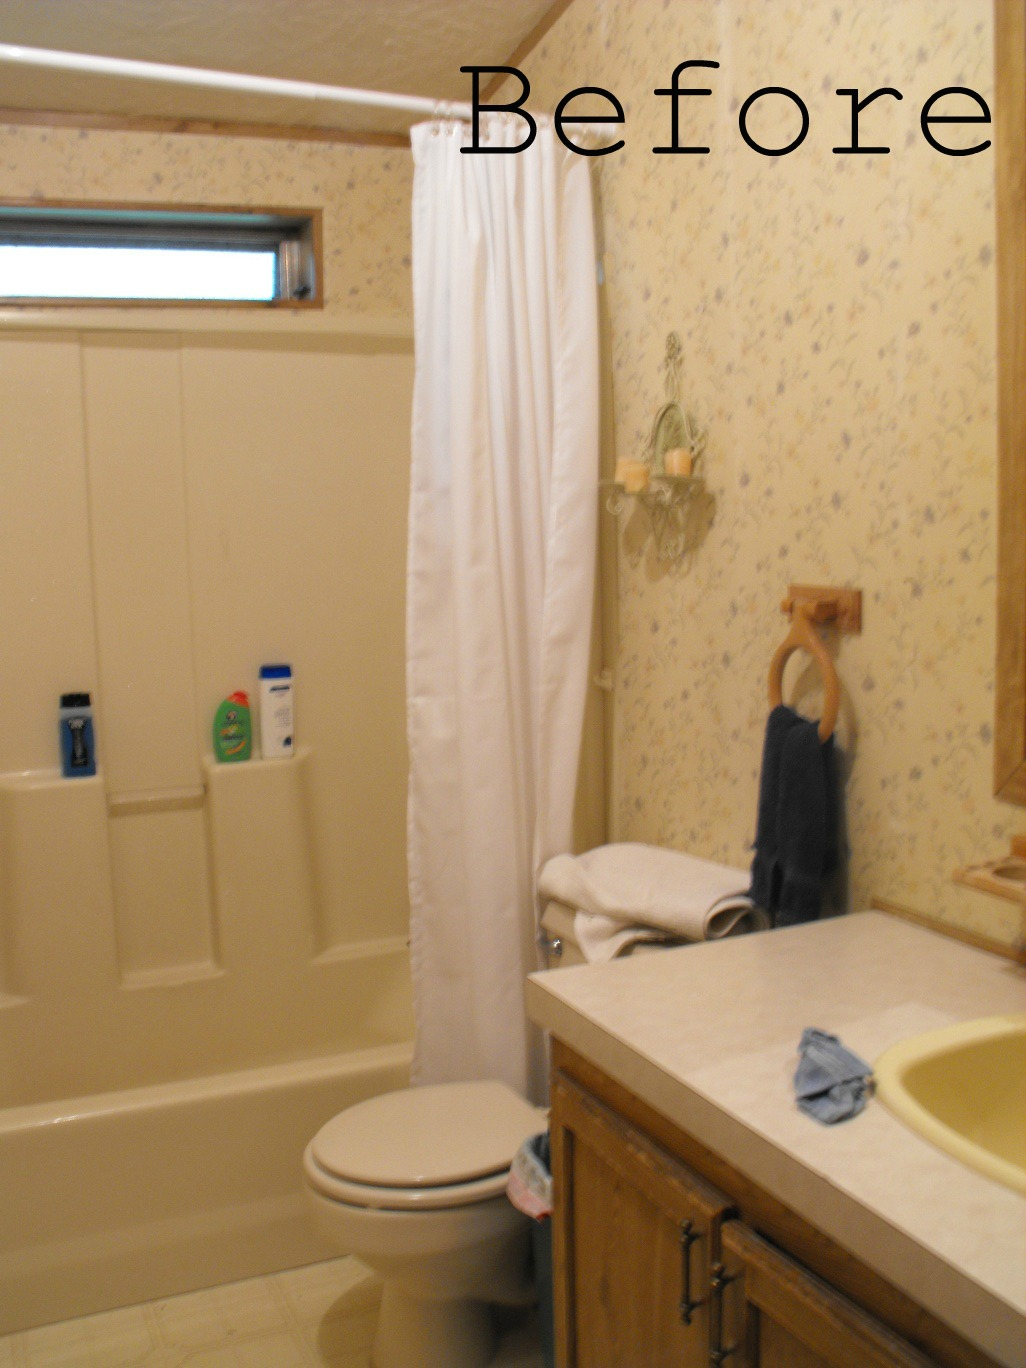 crafty little gnome: Before and After Raindrop Bathroom Makeover